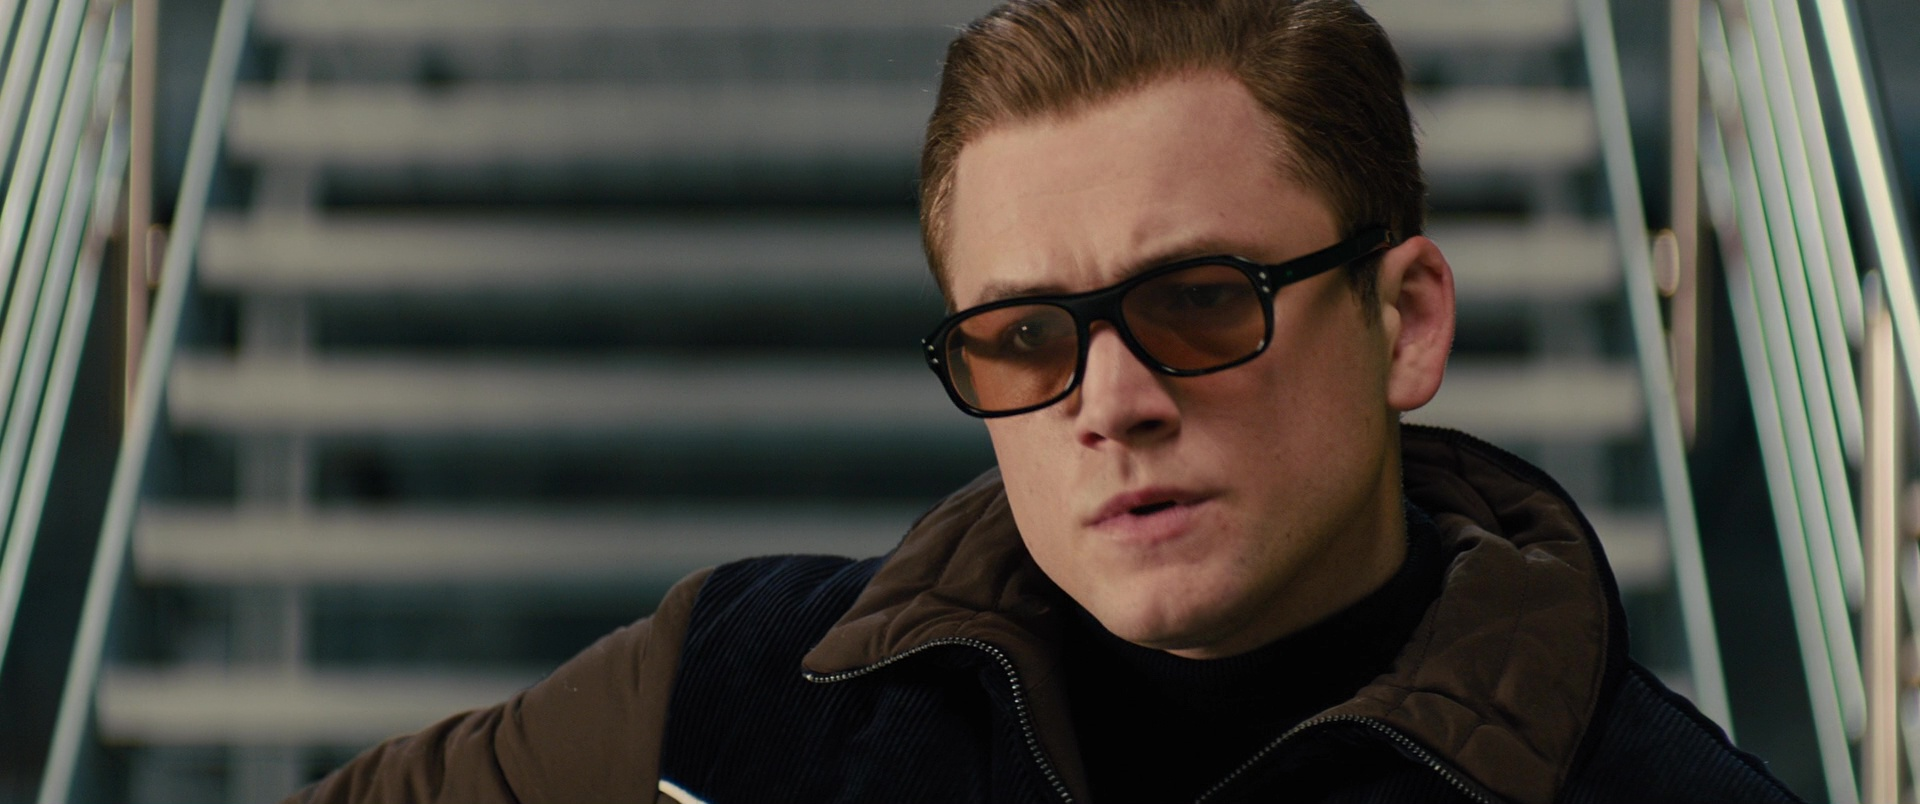 321af0a32e Cutler And Gross Square-Frame Tortoiseshell Acetate Sunglasses Worn by  Taron Egerton in Kingsman 2